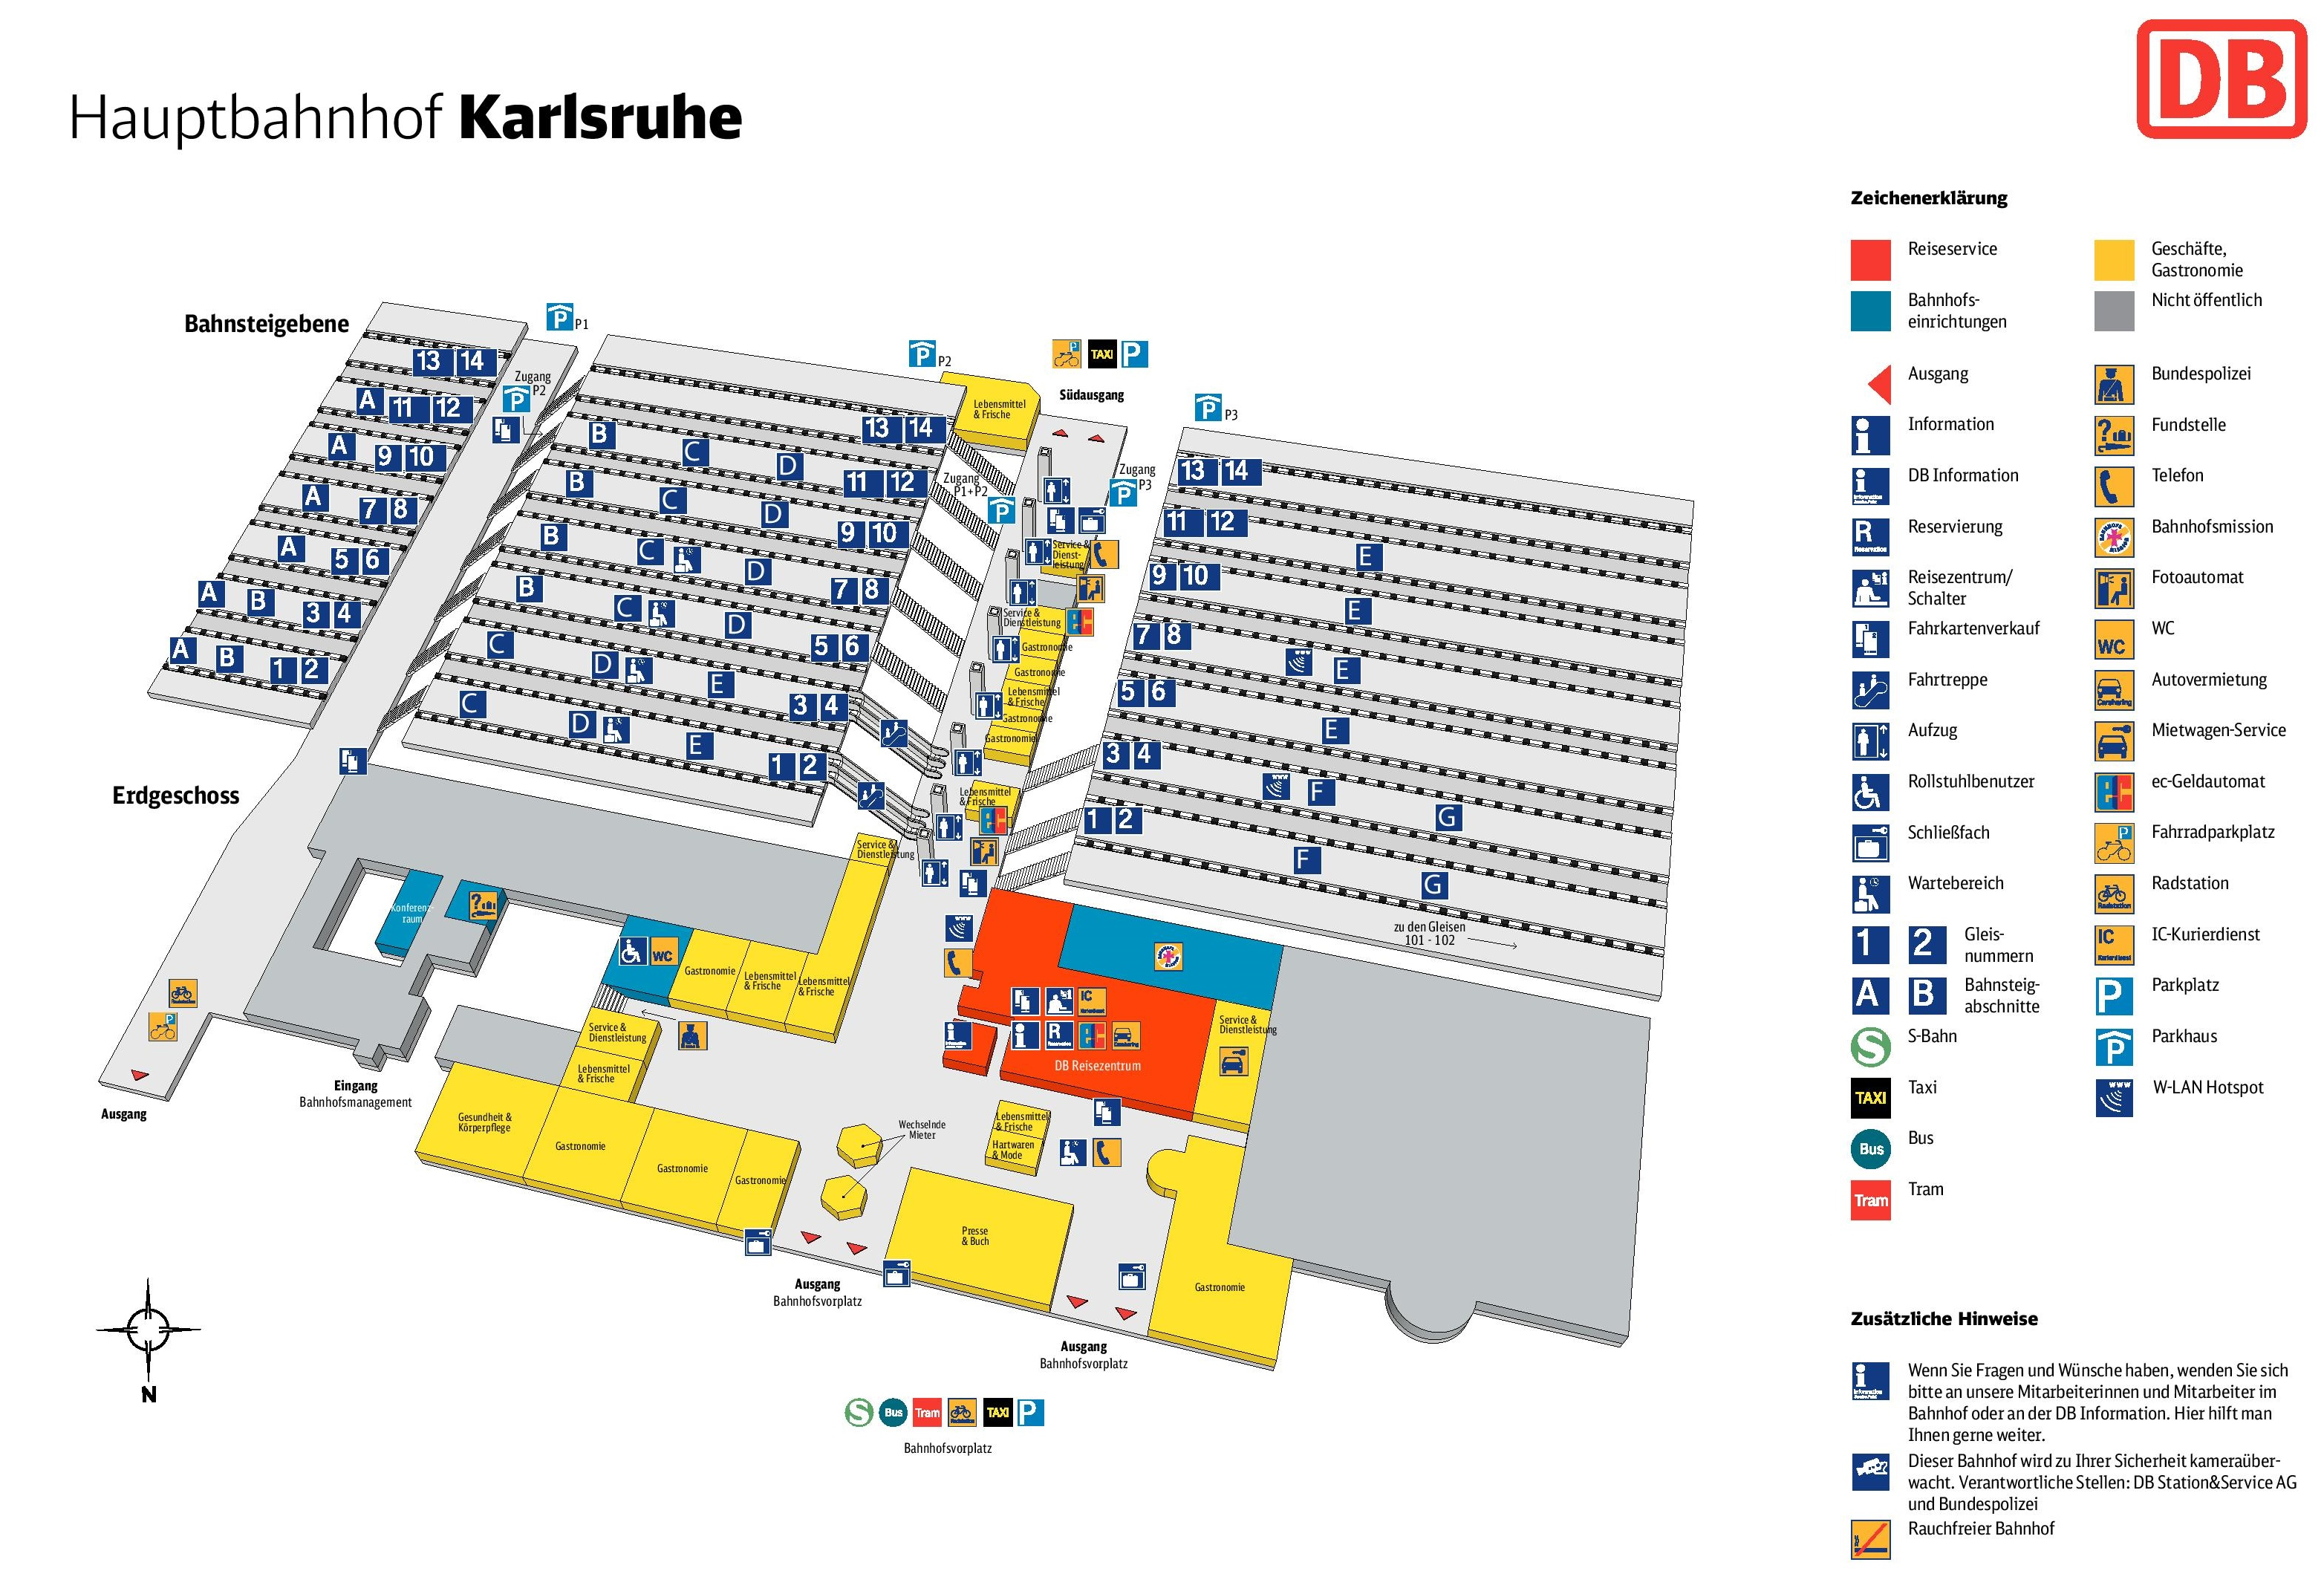 map north las vegas with Karlsruhe Hauptbahnhof Map on Stockholm Tourist Attractions Map moreover Western Australia Location On The Australia Map likewise Evia Road Map besides Lubeck Tourist Map further Arles Tourist Attractions Map.